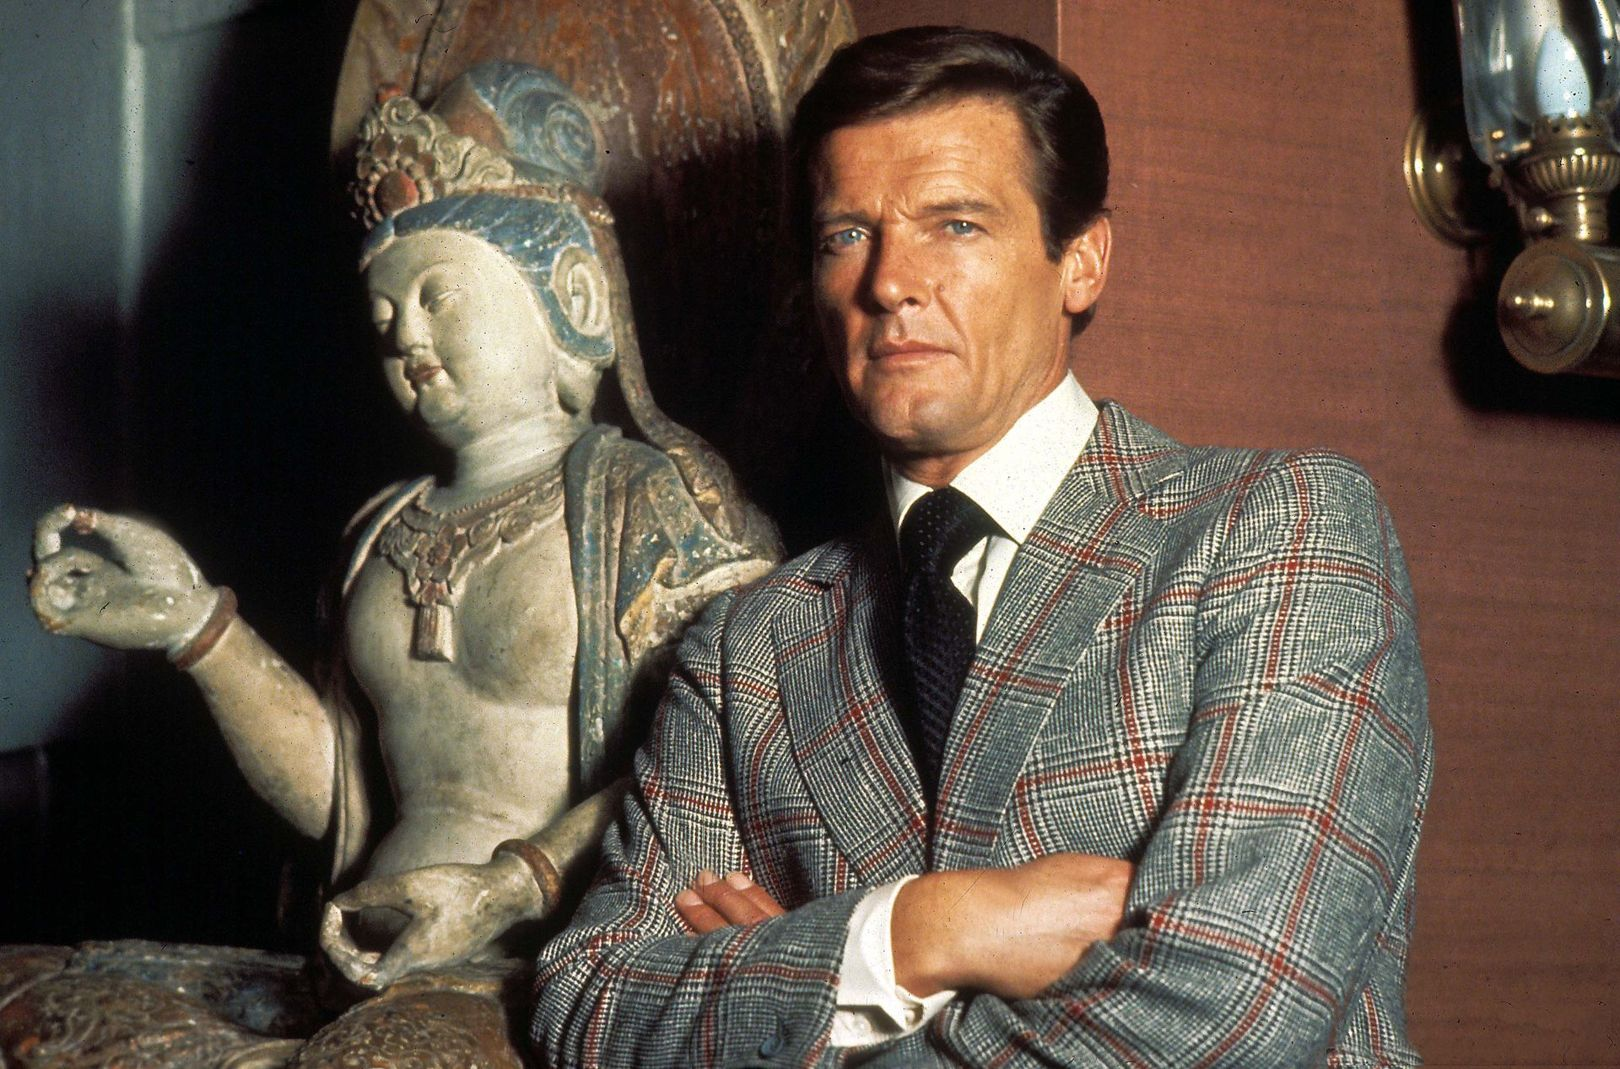 007 Style: Sir Roger Moore Style Tips: As the world mourns the loss of Sir Roger Moore, it is best to remember that he lives on in the iconic fashion statements he made. Here are 4 simple ways to amp up your wardrobe all while maintaining that suave 007 look.